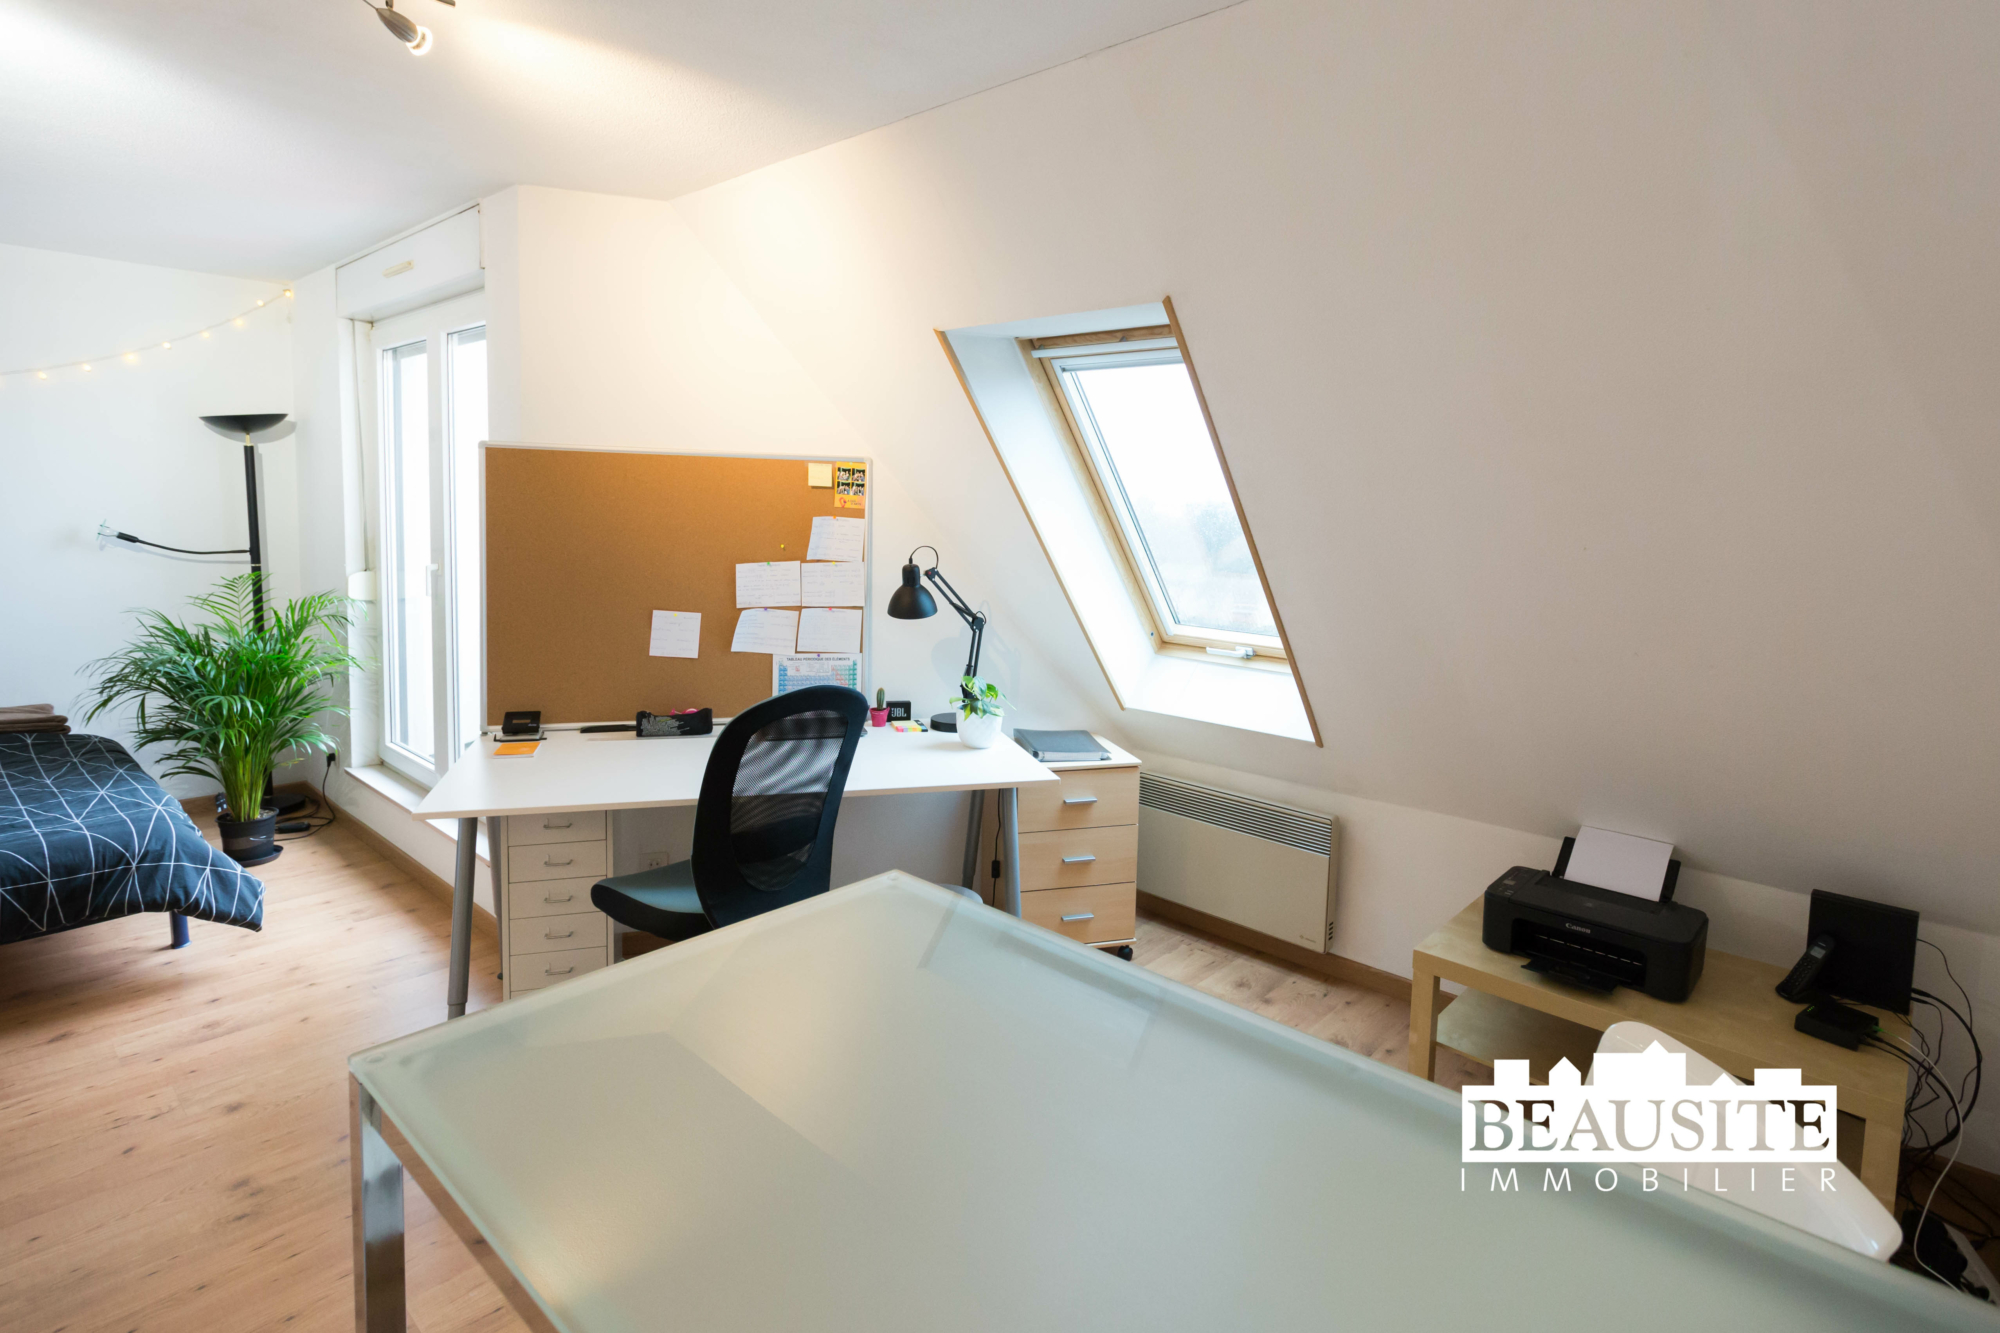 [Everest] Un studio au top en face du Lycée Kléber ! - nos ventes - Beausite Immobilier 5